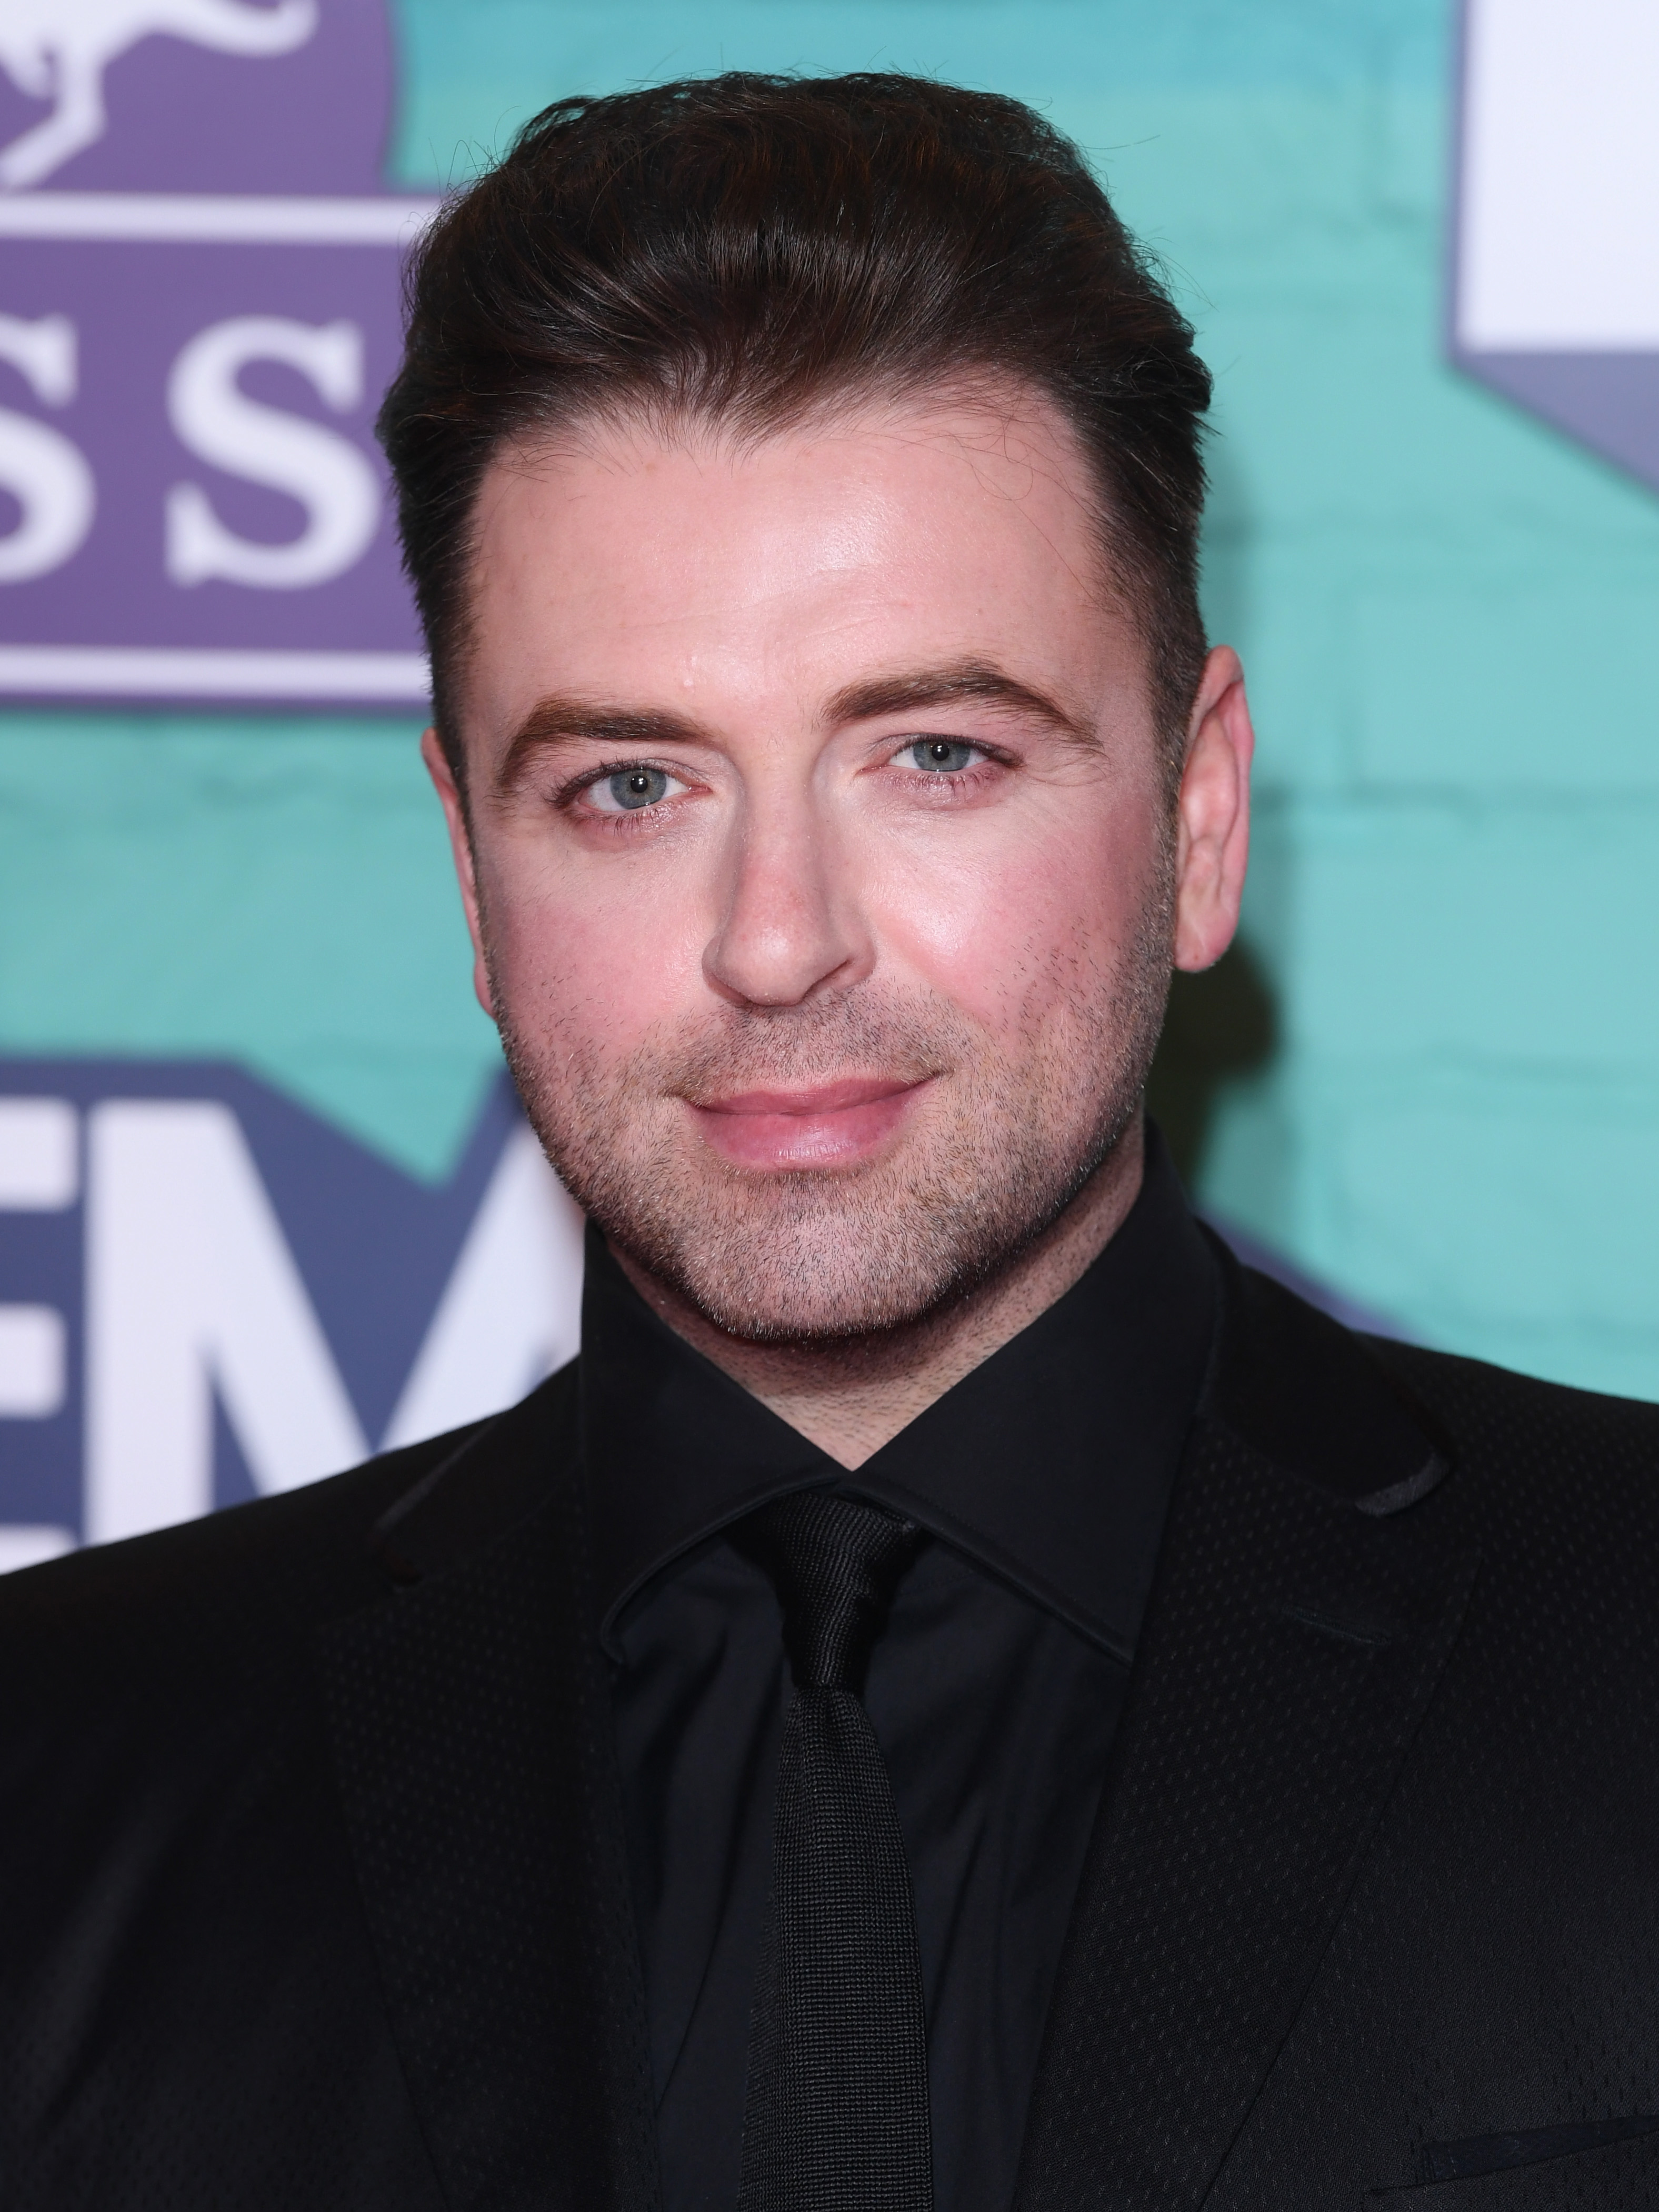 Westlife S Mark Feehily Mariah Carey Once Told Me Off